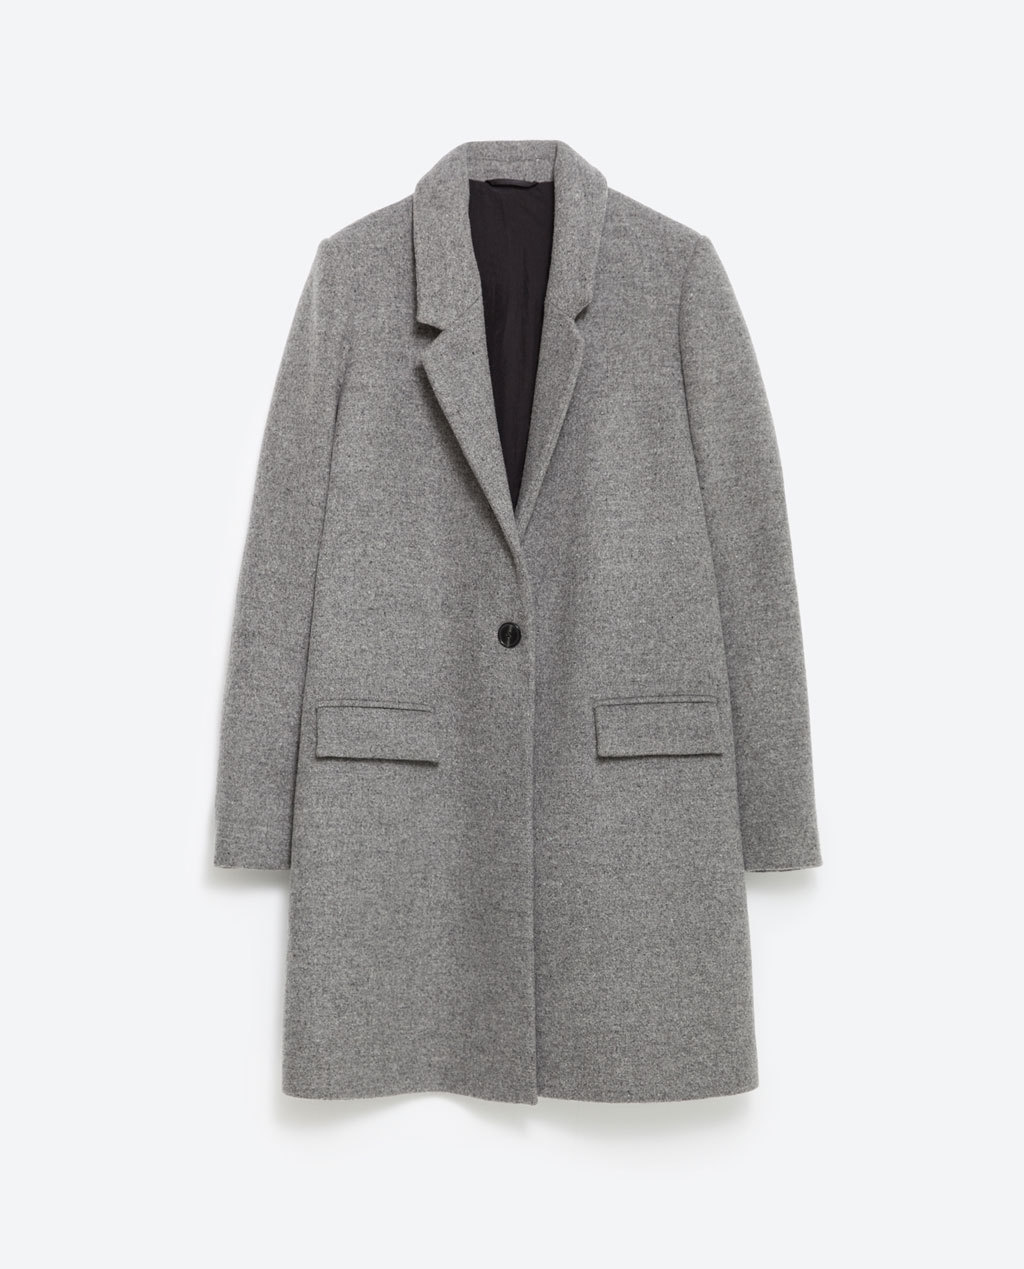 Masculine Coat - pattern: plain; style: single breasted; collar: standard lapel/rever collar; length: mid thigh; predominant colour: charcoal; occasions: work, creative work; fit: straight cut (boxy); sleeve length: long sleeve; sleeve style: standard; collar break: medium; texture group: woven bulky/heavy; season: a/w 2015; wardrobe: investment